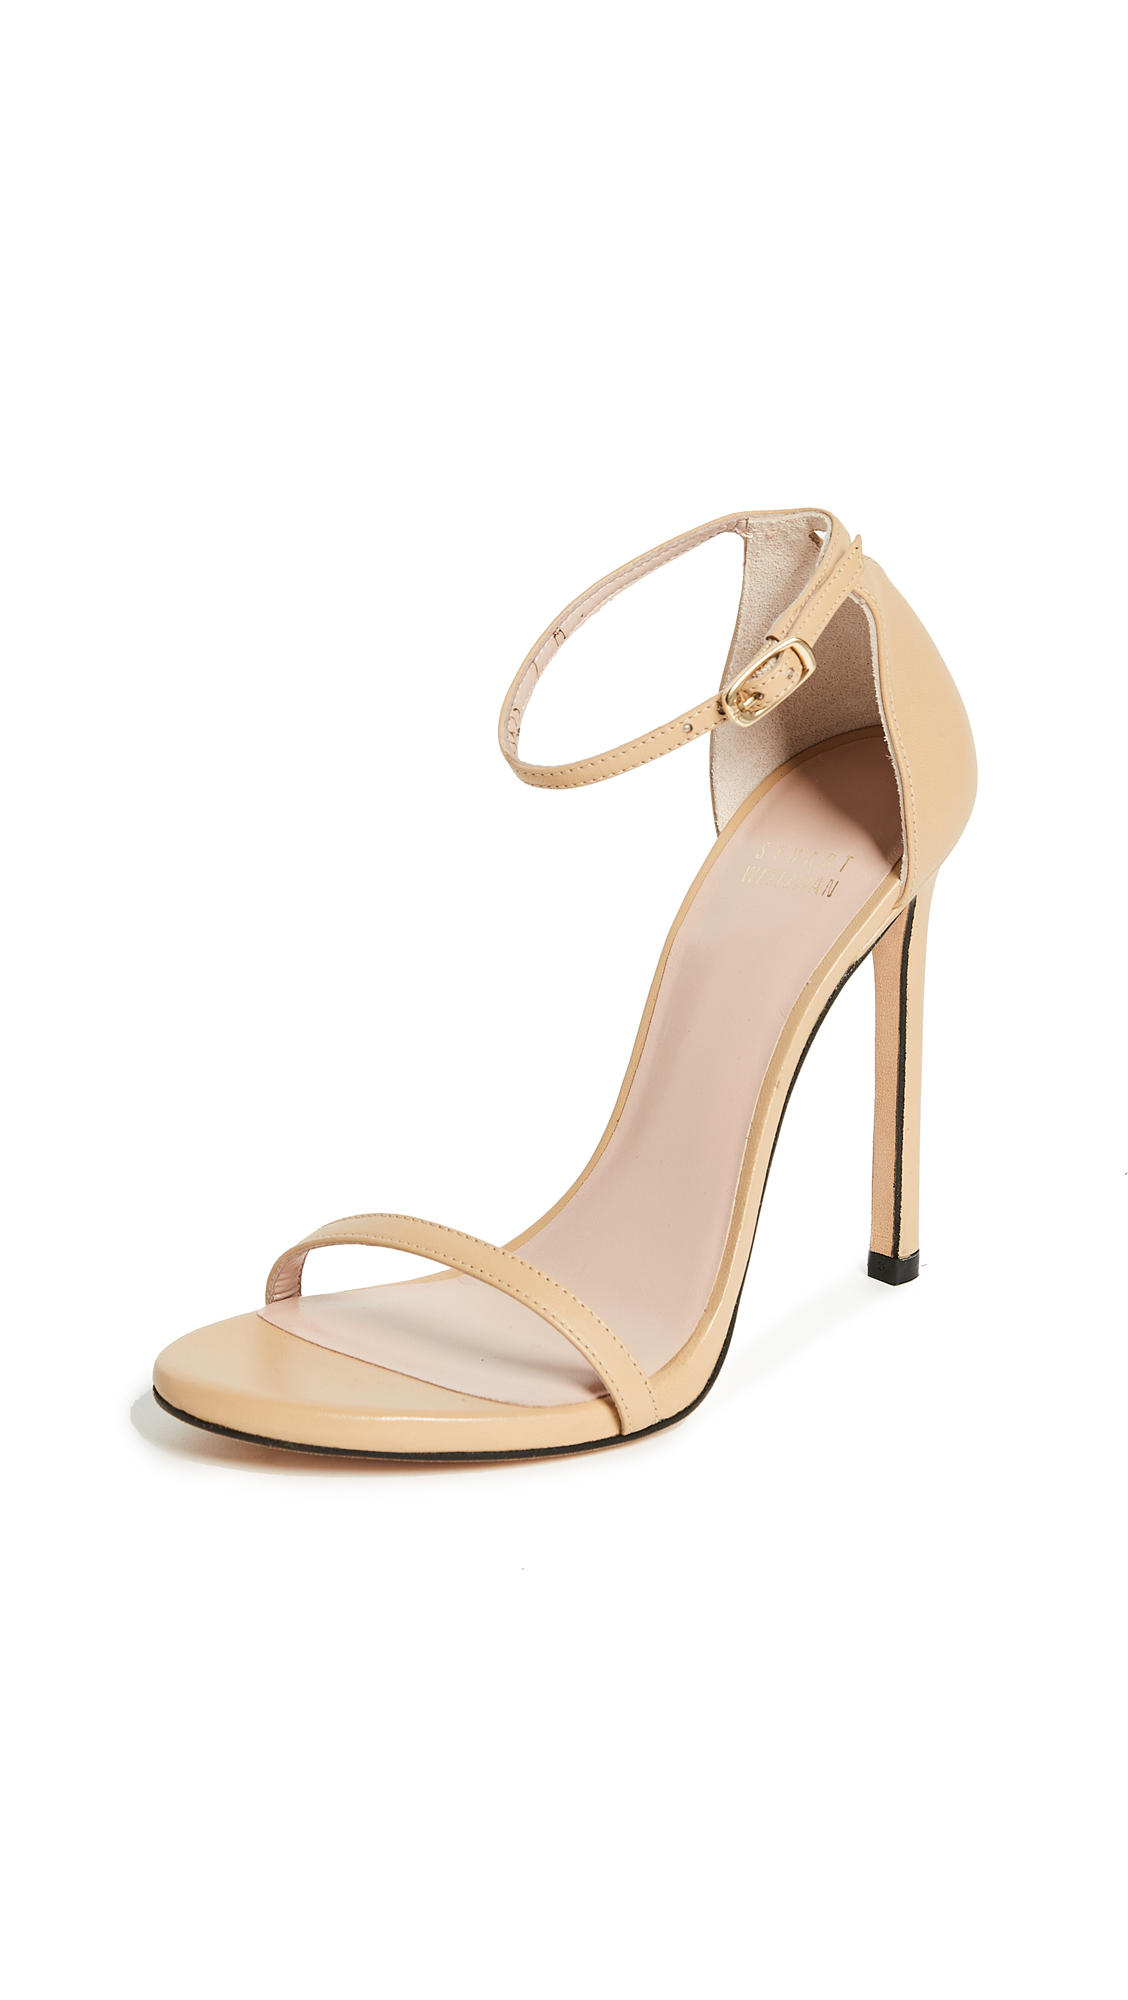 67123522001c Stuart Weitzman Nudist 110mm Sandals